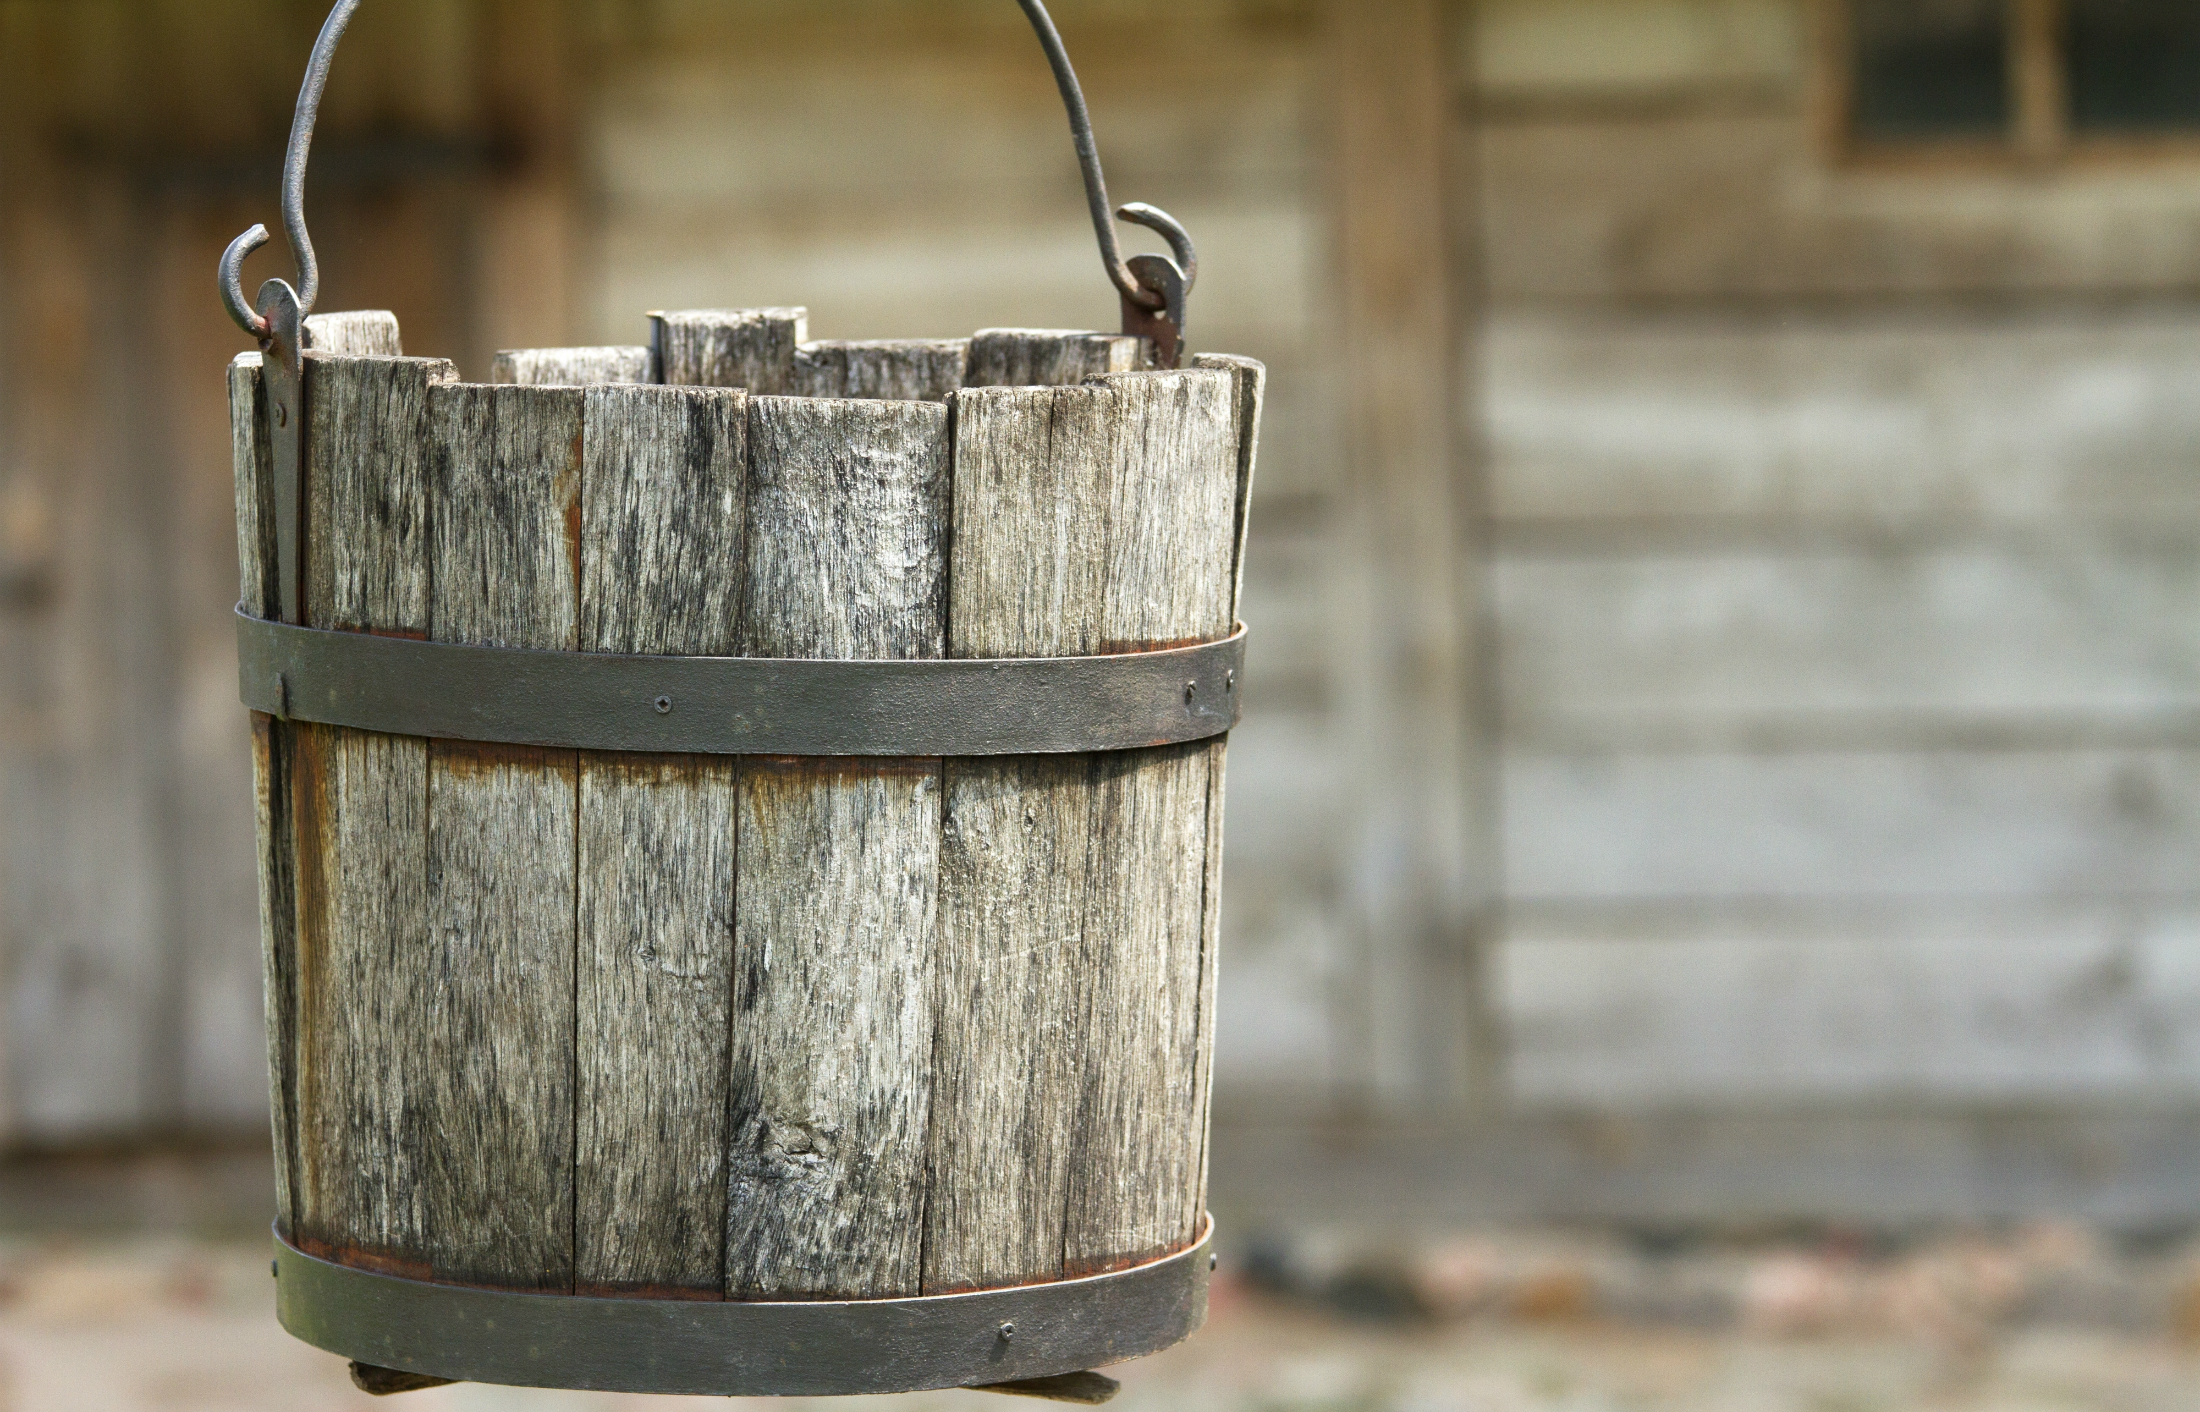 Does your bucket have a hole in it?